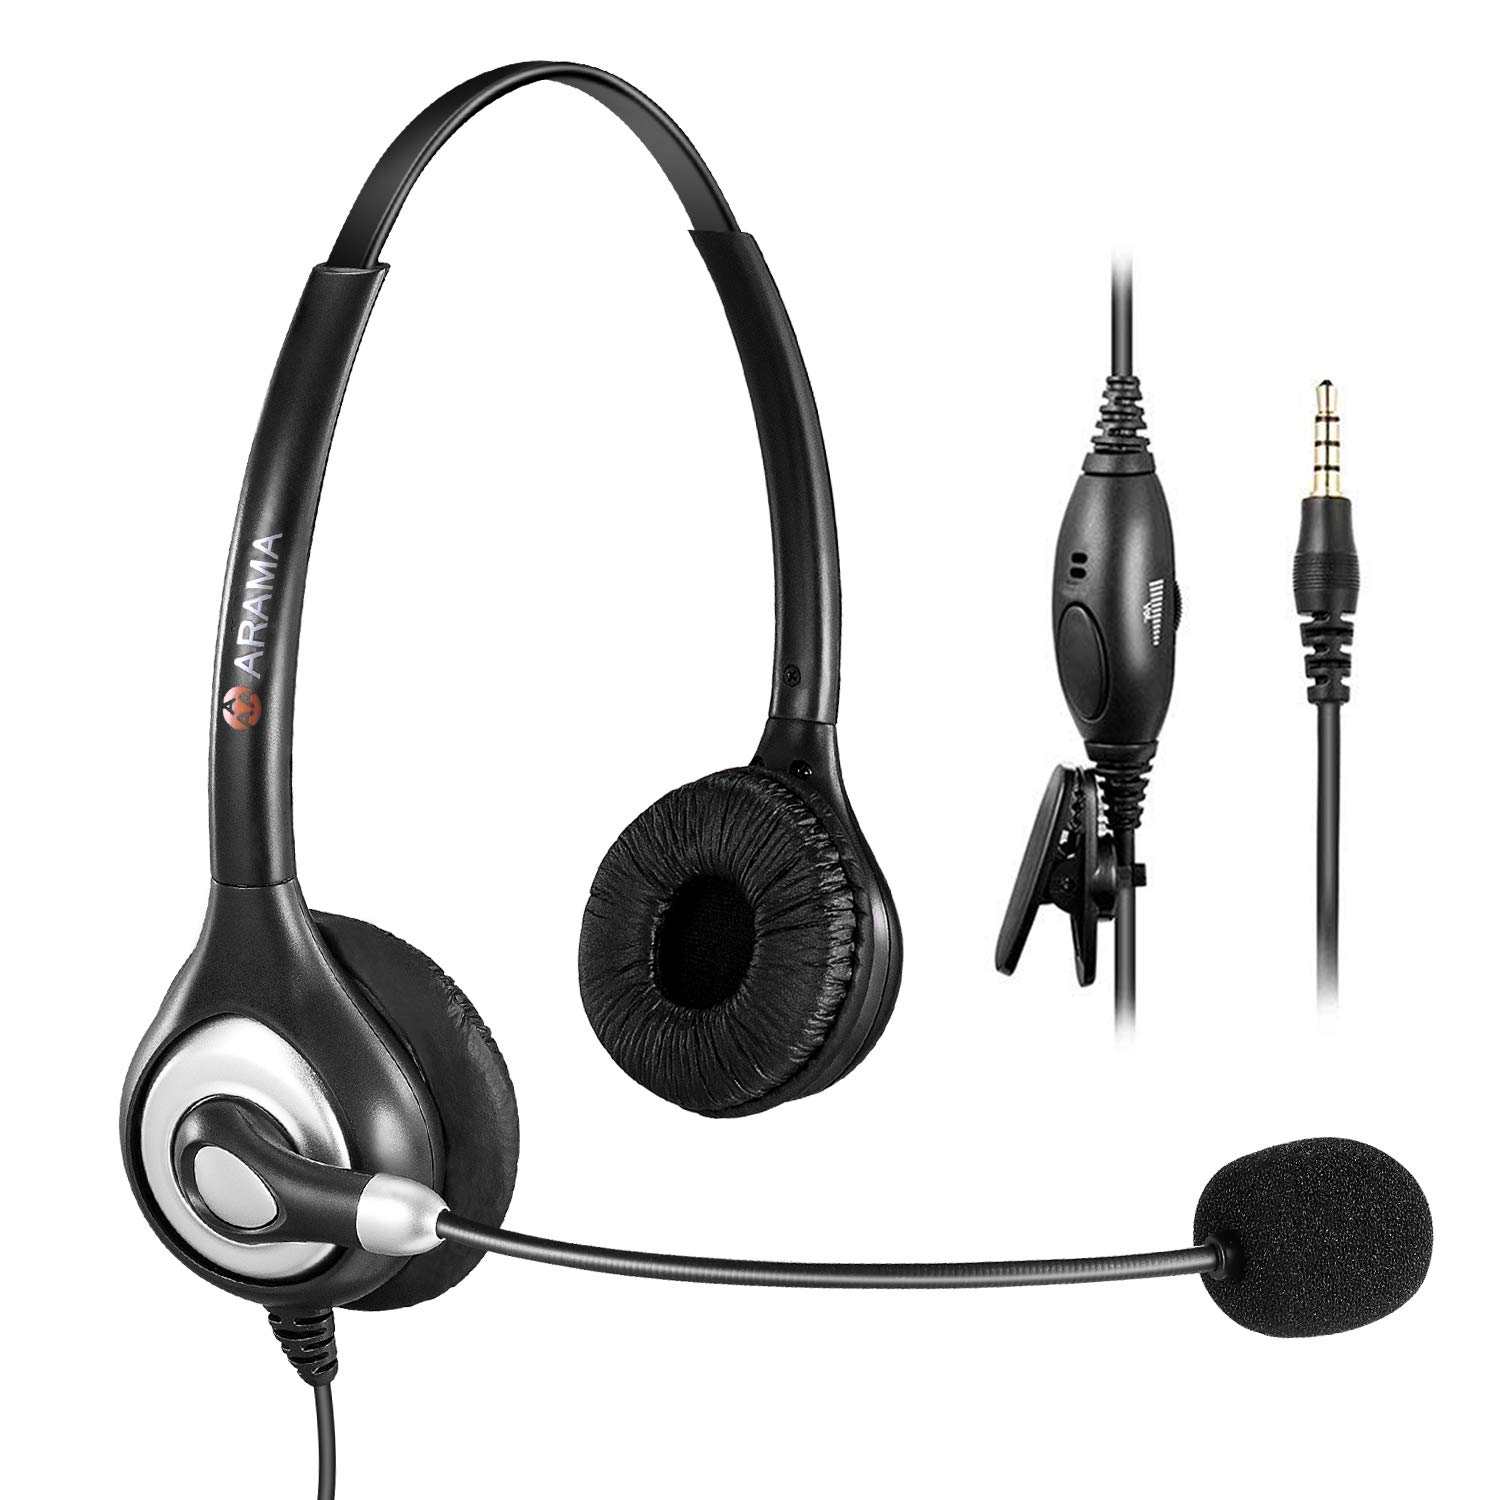 Arama Cell Phone Headset with Noise Canceling Boom Mic and Adjustable Fit Headband for iPhone, Samsung, LG, HTC, Blackberry, Huawei, ZTE Mobile Phone and Smartphones with 3.5 mm Jack(A600MP)